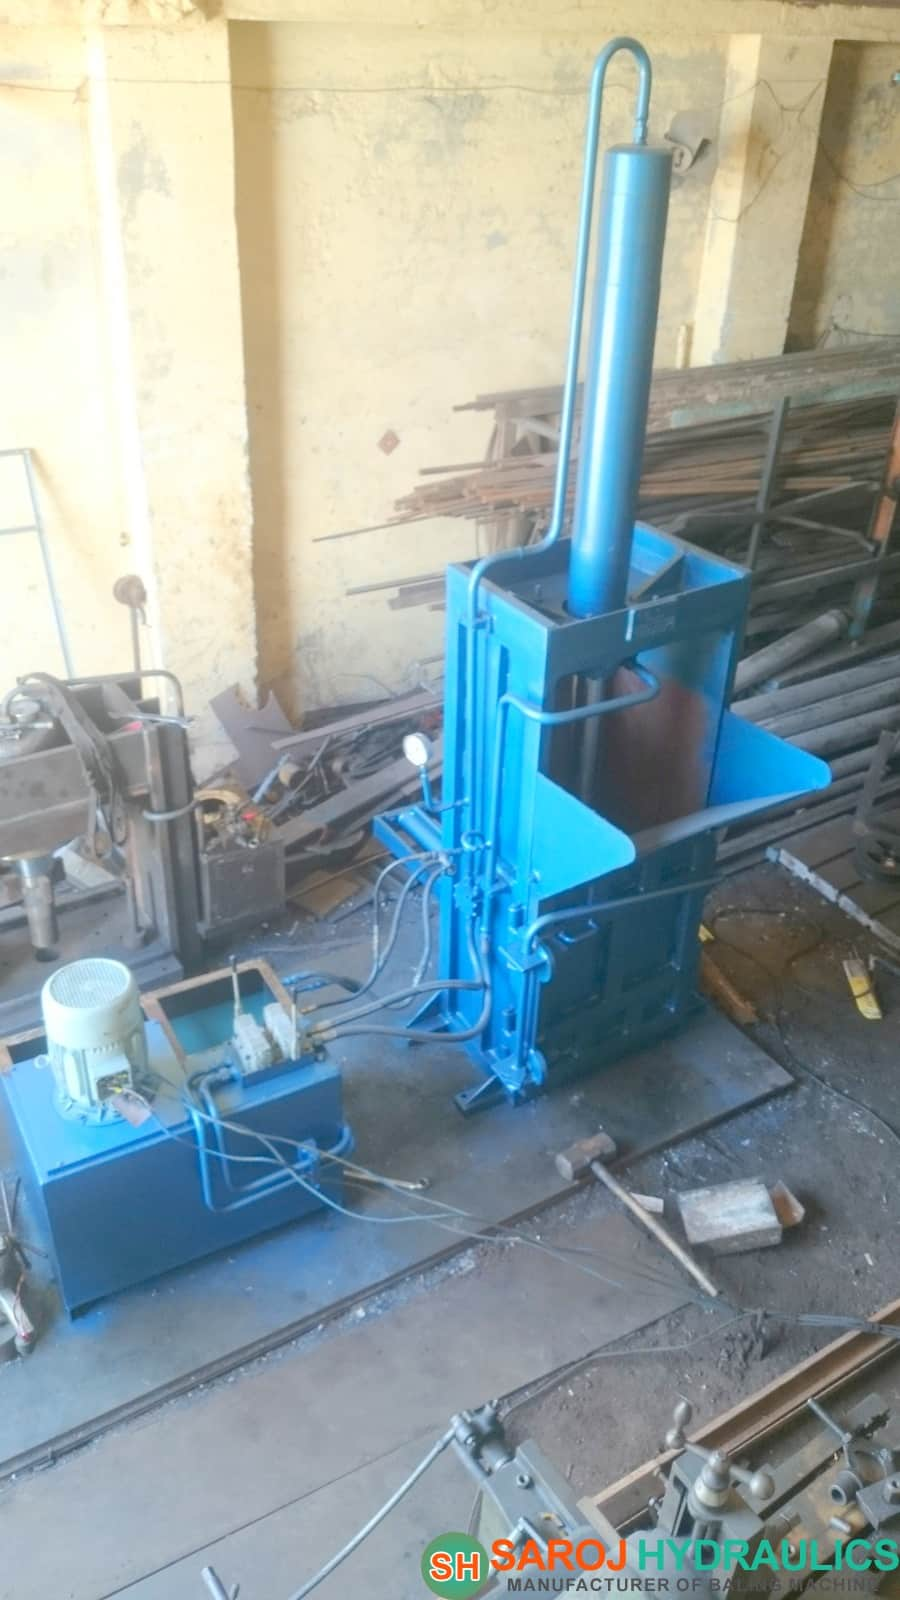 pet bottle baling press machine manufacturer of hydraulic waste baling/baler/bale press/pressing machine(manual/automatic baling machine)in (INDIA,new delhi) with competitive price.